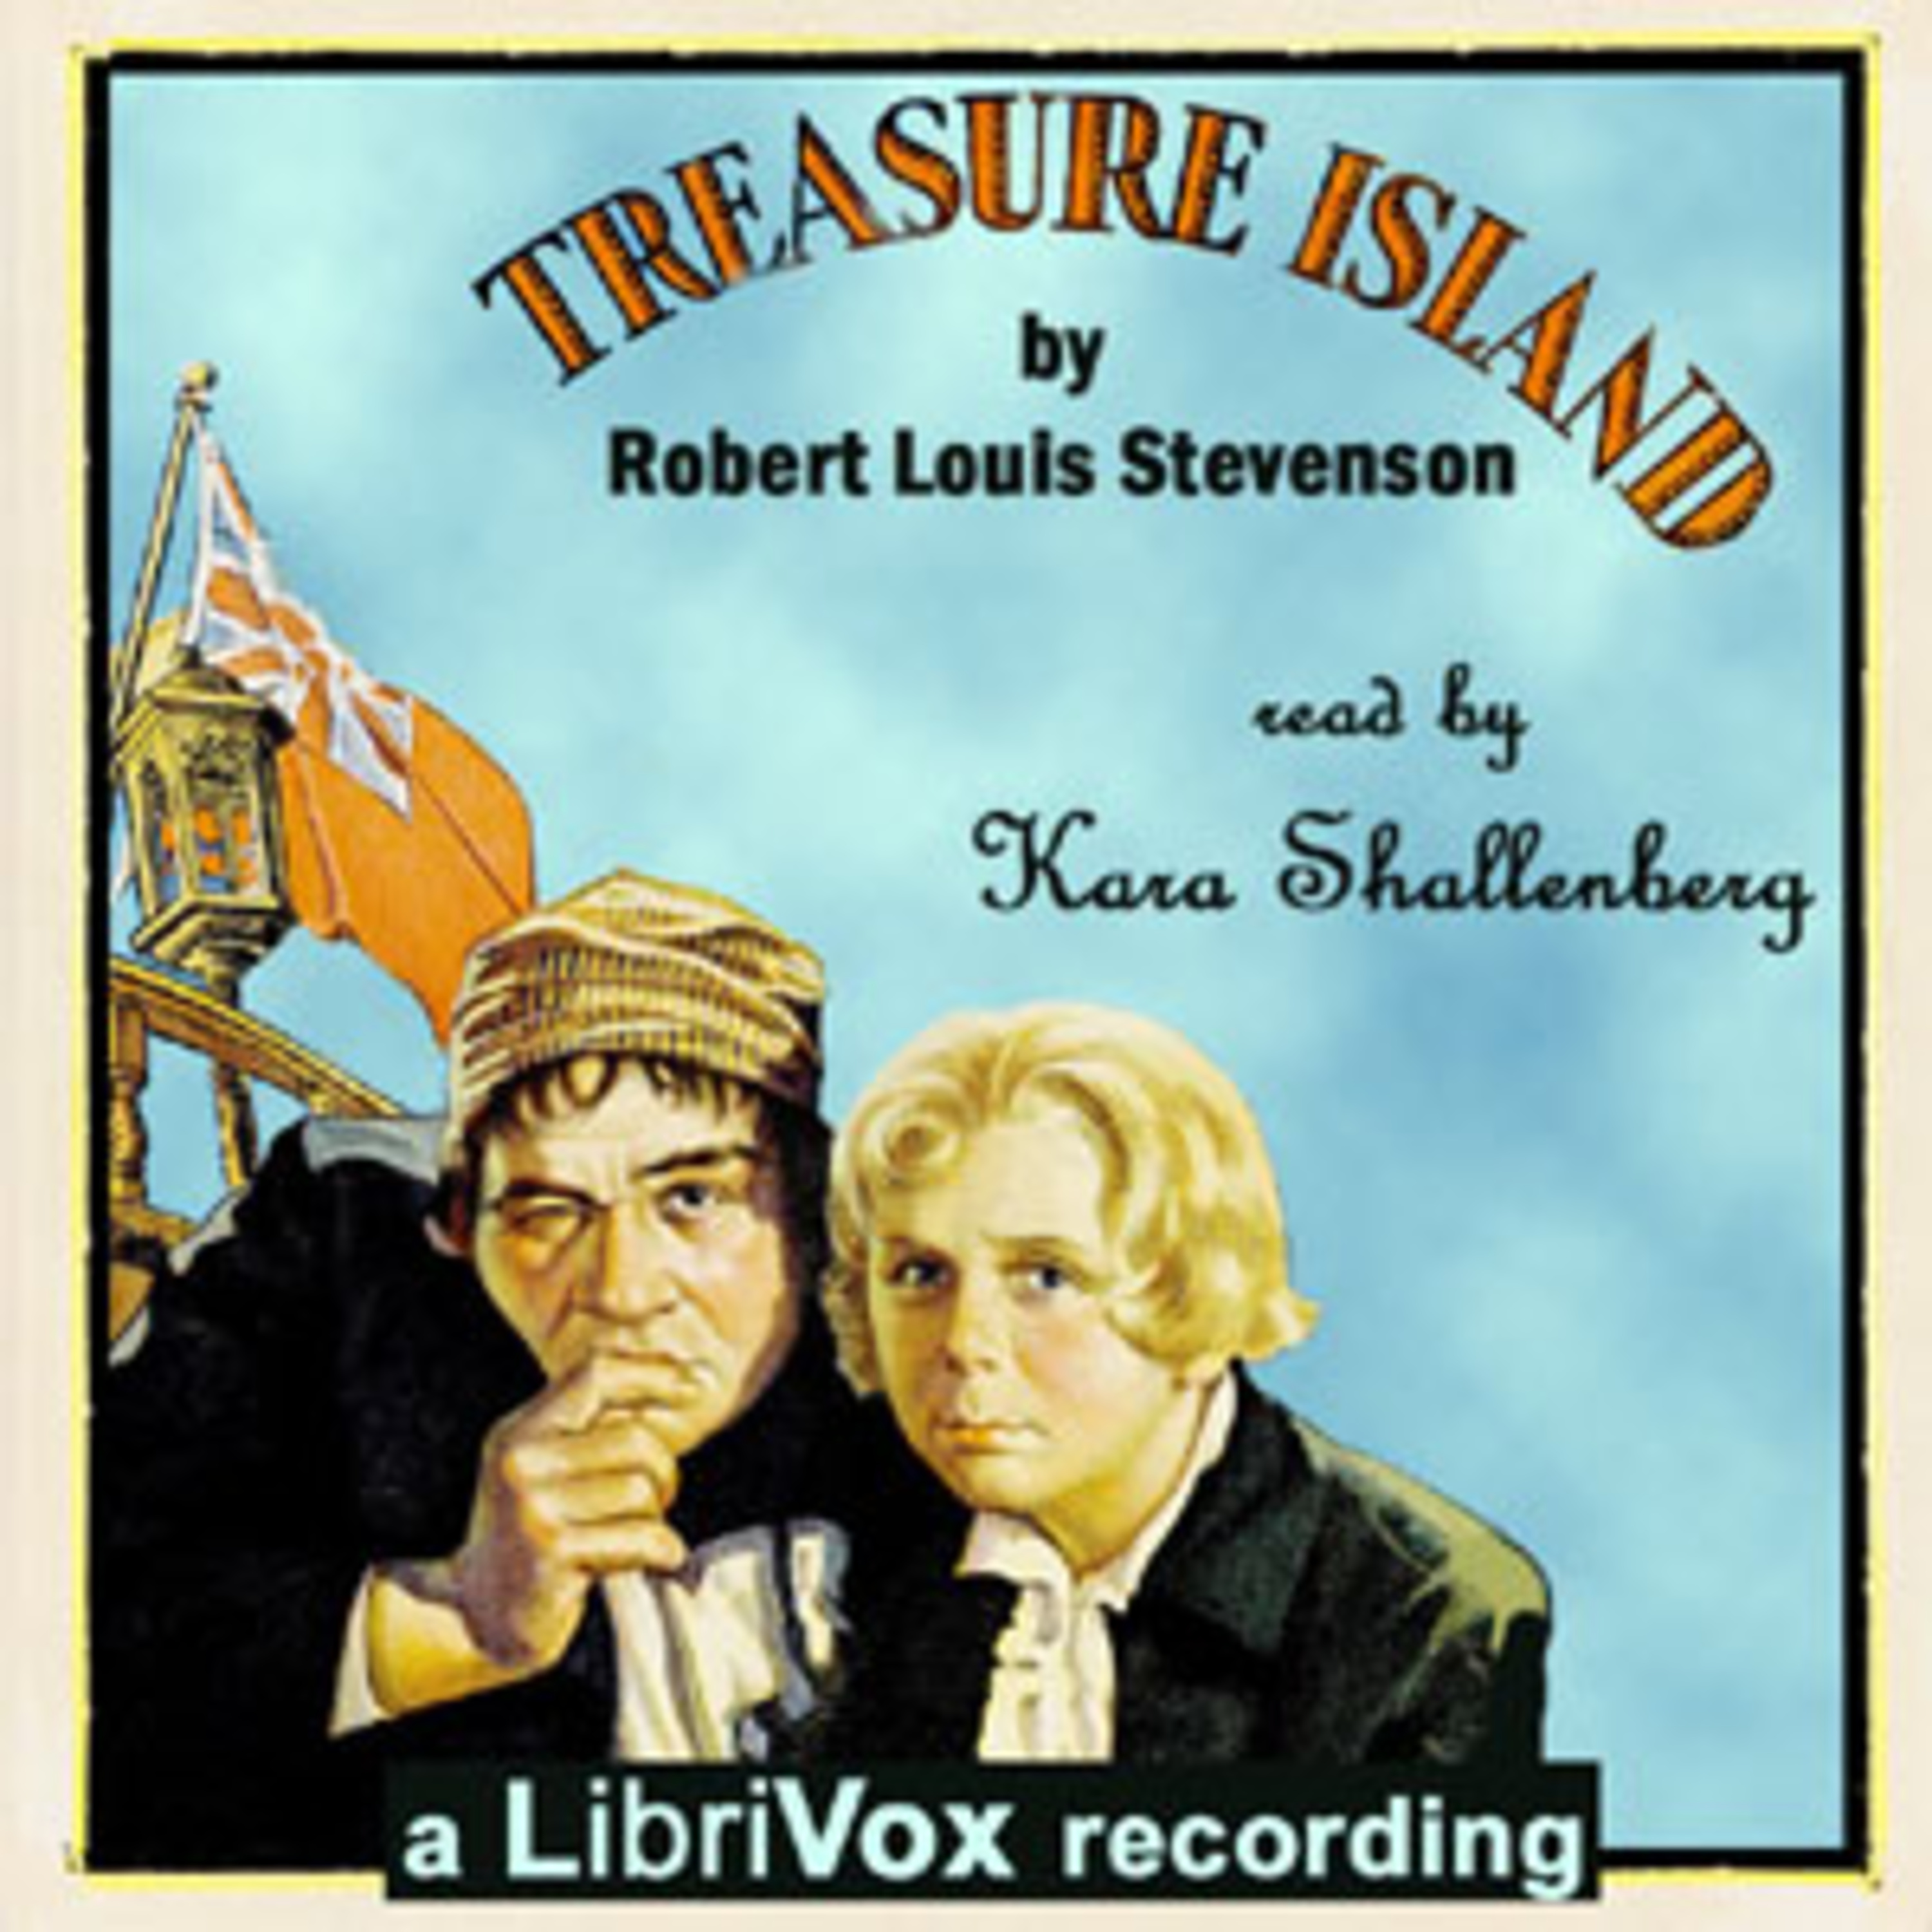 The Treasure Island Podcast - Robert Lewis Stevenson - Chapters 7-11